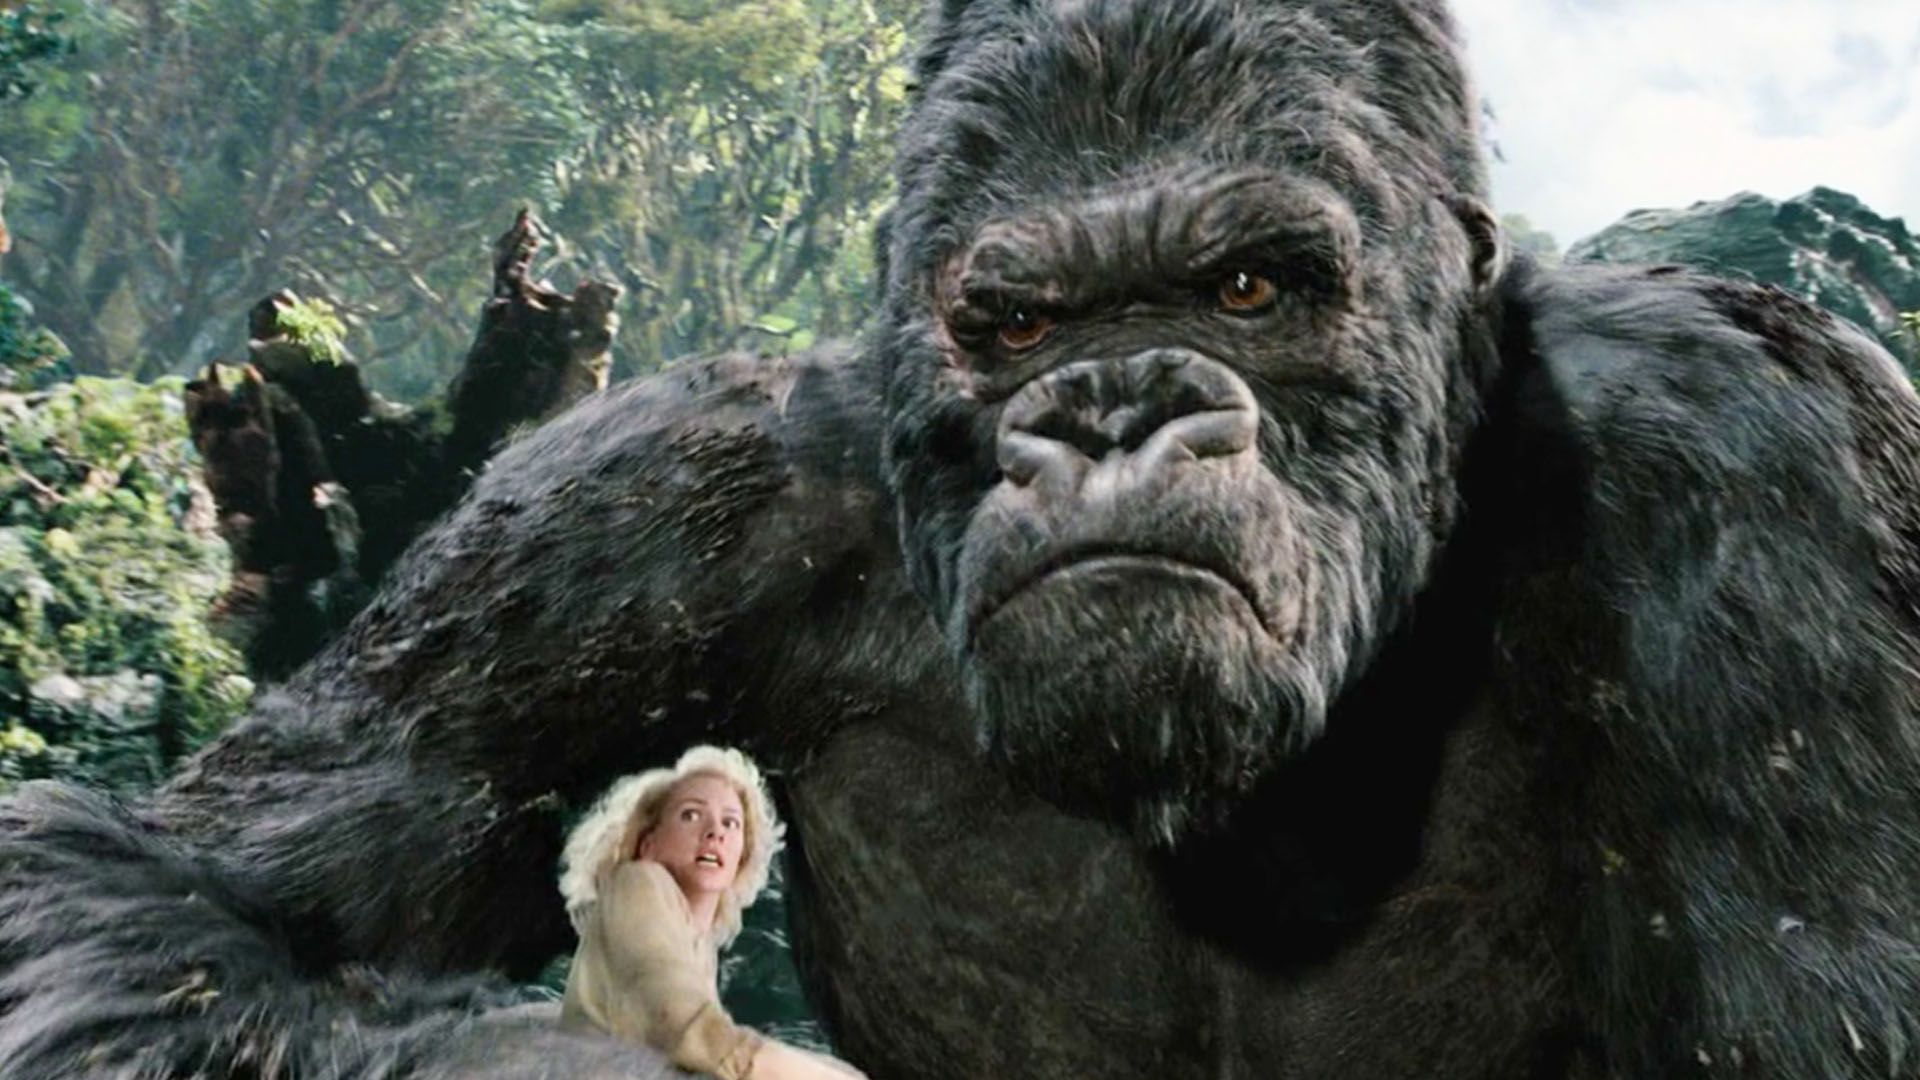 Hd king kong wallpapers and photos hd movies wallpapers - King kong 2005 hd wallpapers ...